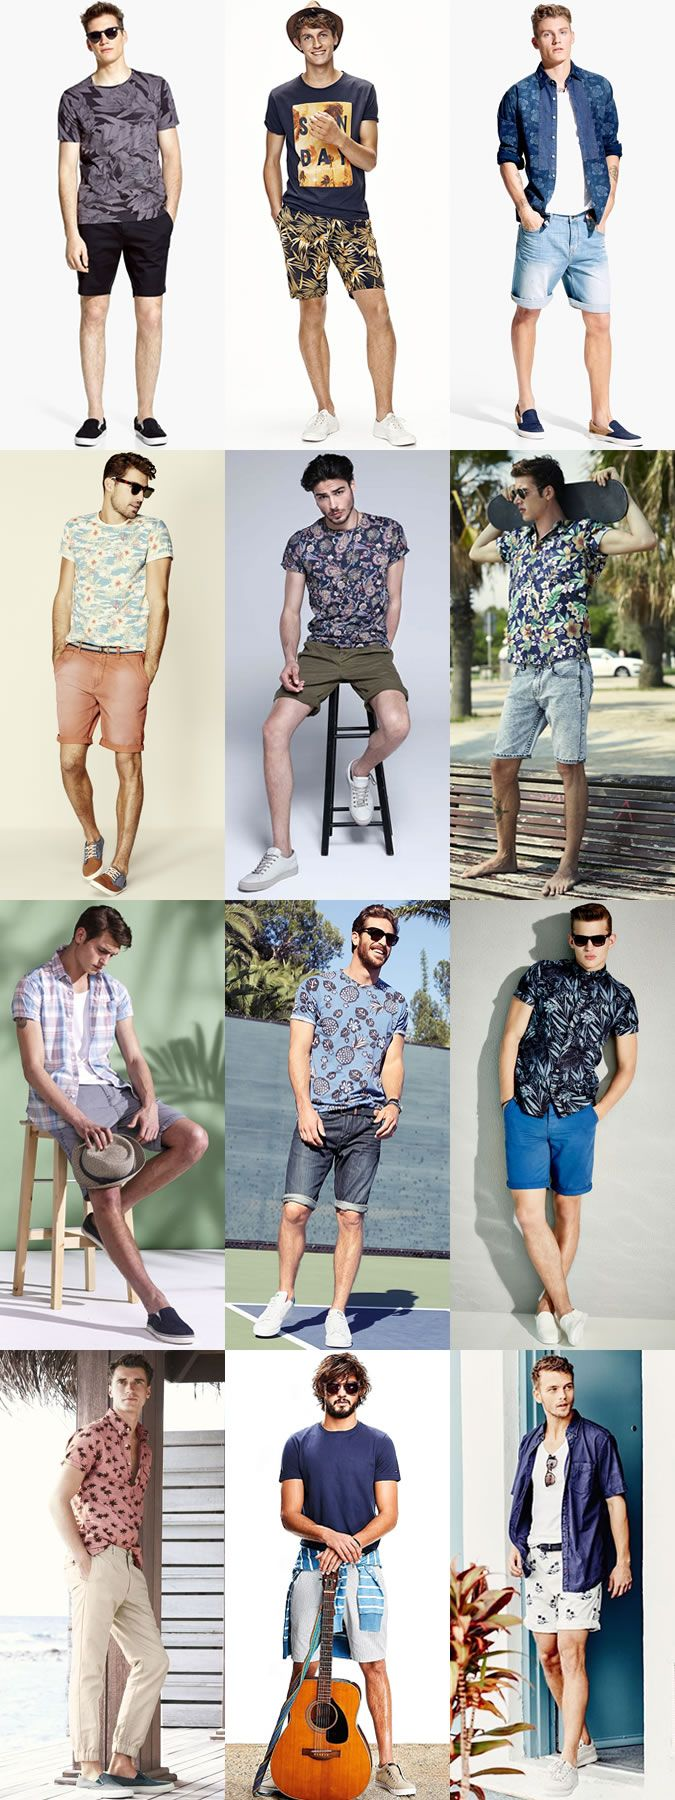 4a2eedc87a Men's Ibiza Summer Holiday Outfit Inspiration Lookbook | Summer ...